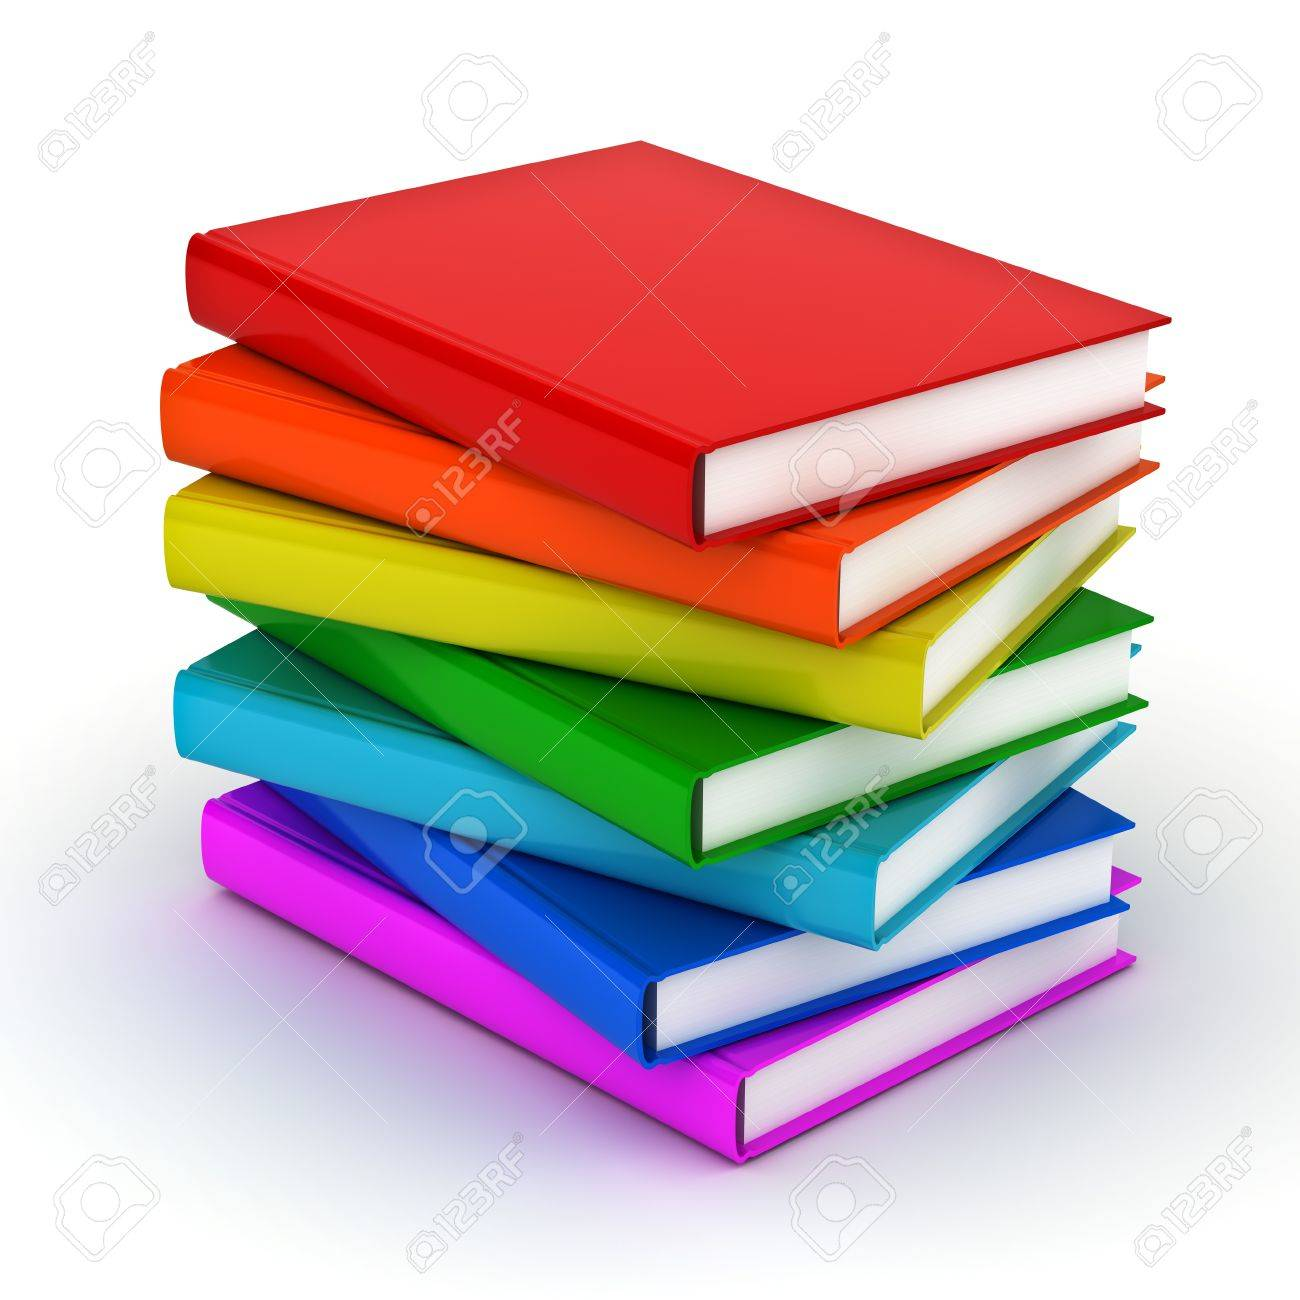 Stack Of Colorful Books Over White Background Stock Photo, Picture ...